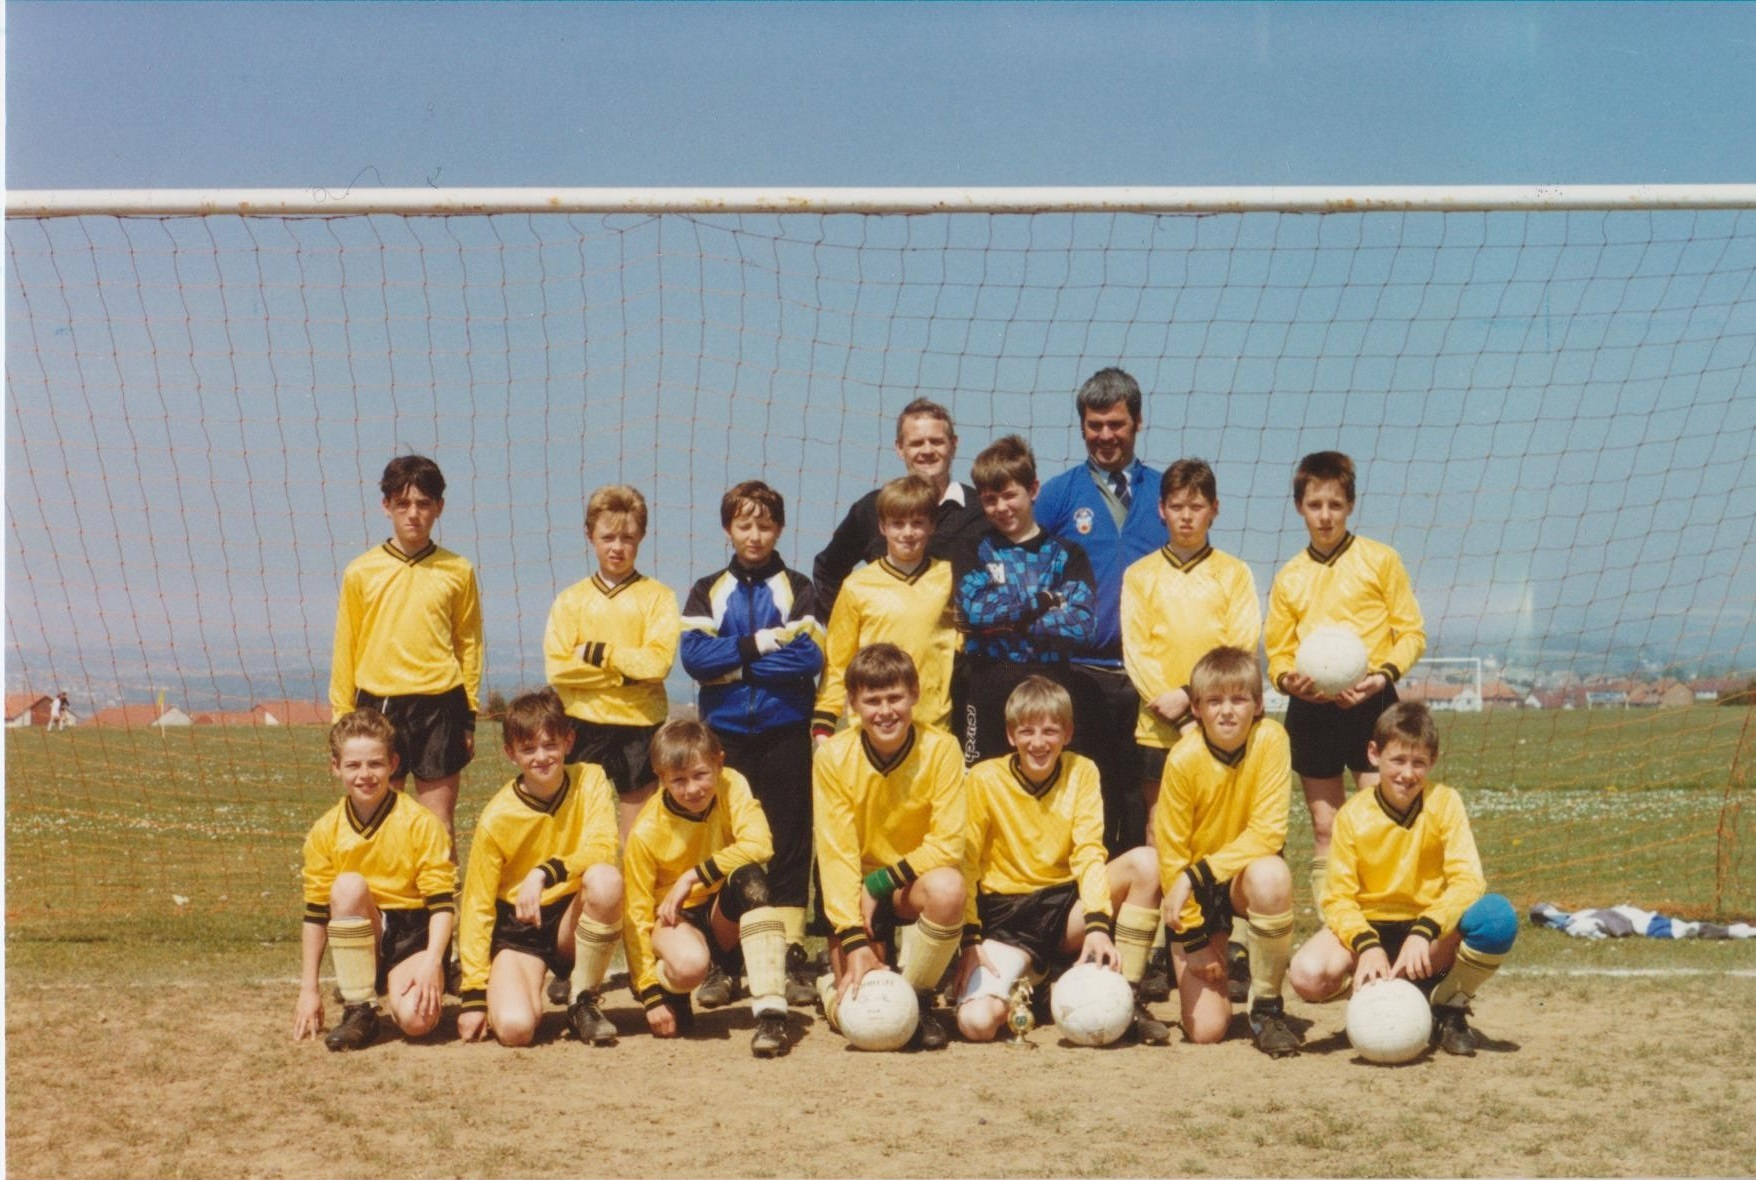 This week's photograph is of the West Cornwall Boys' League's under-12 side, taken in May 1990.